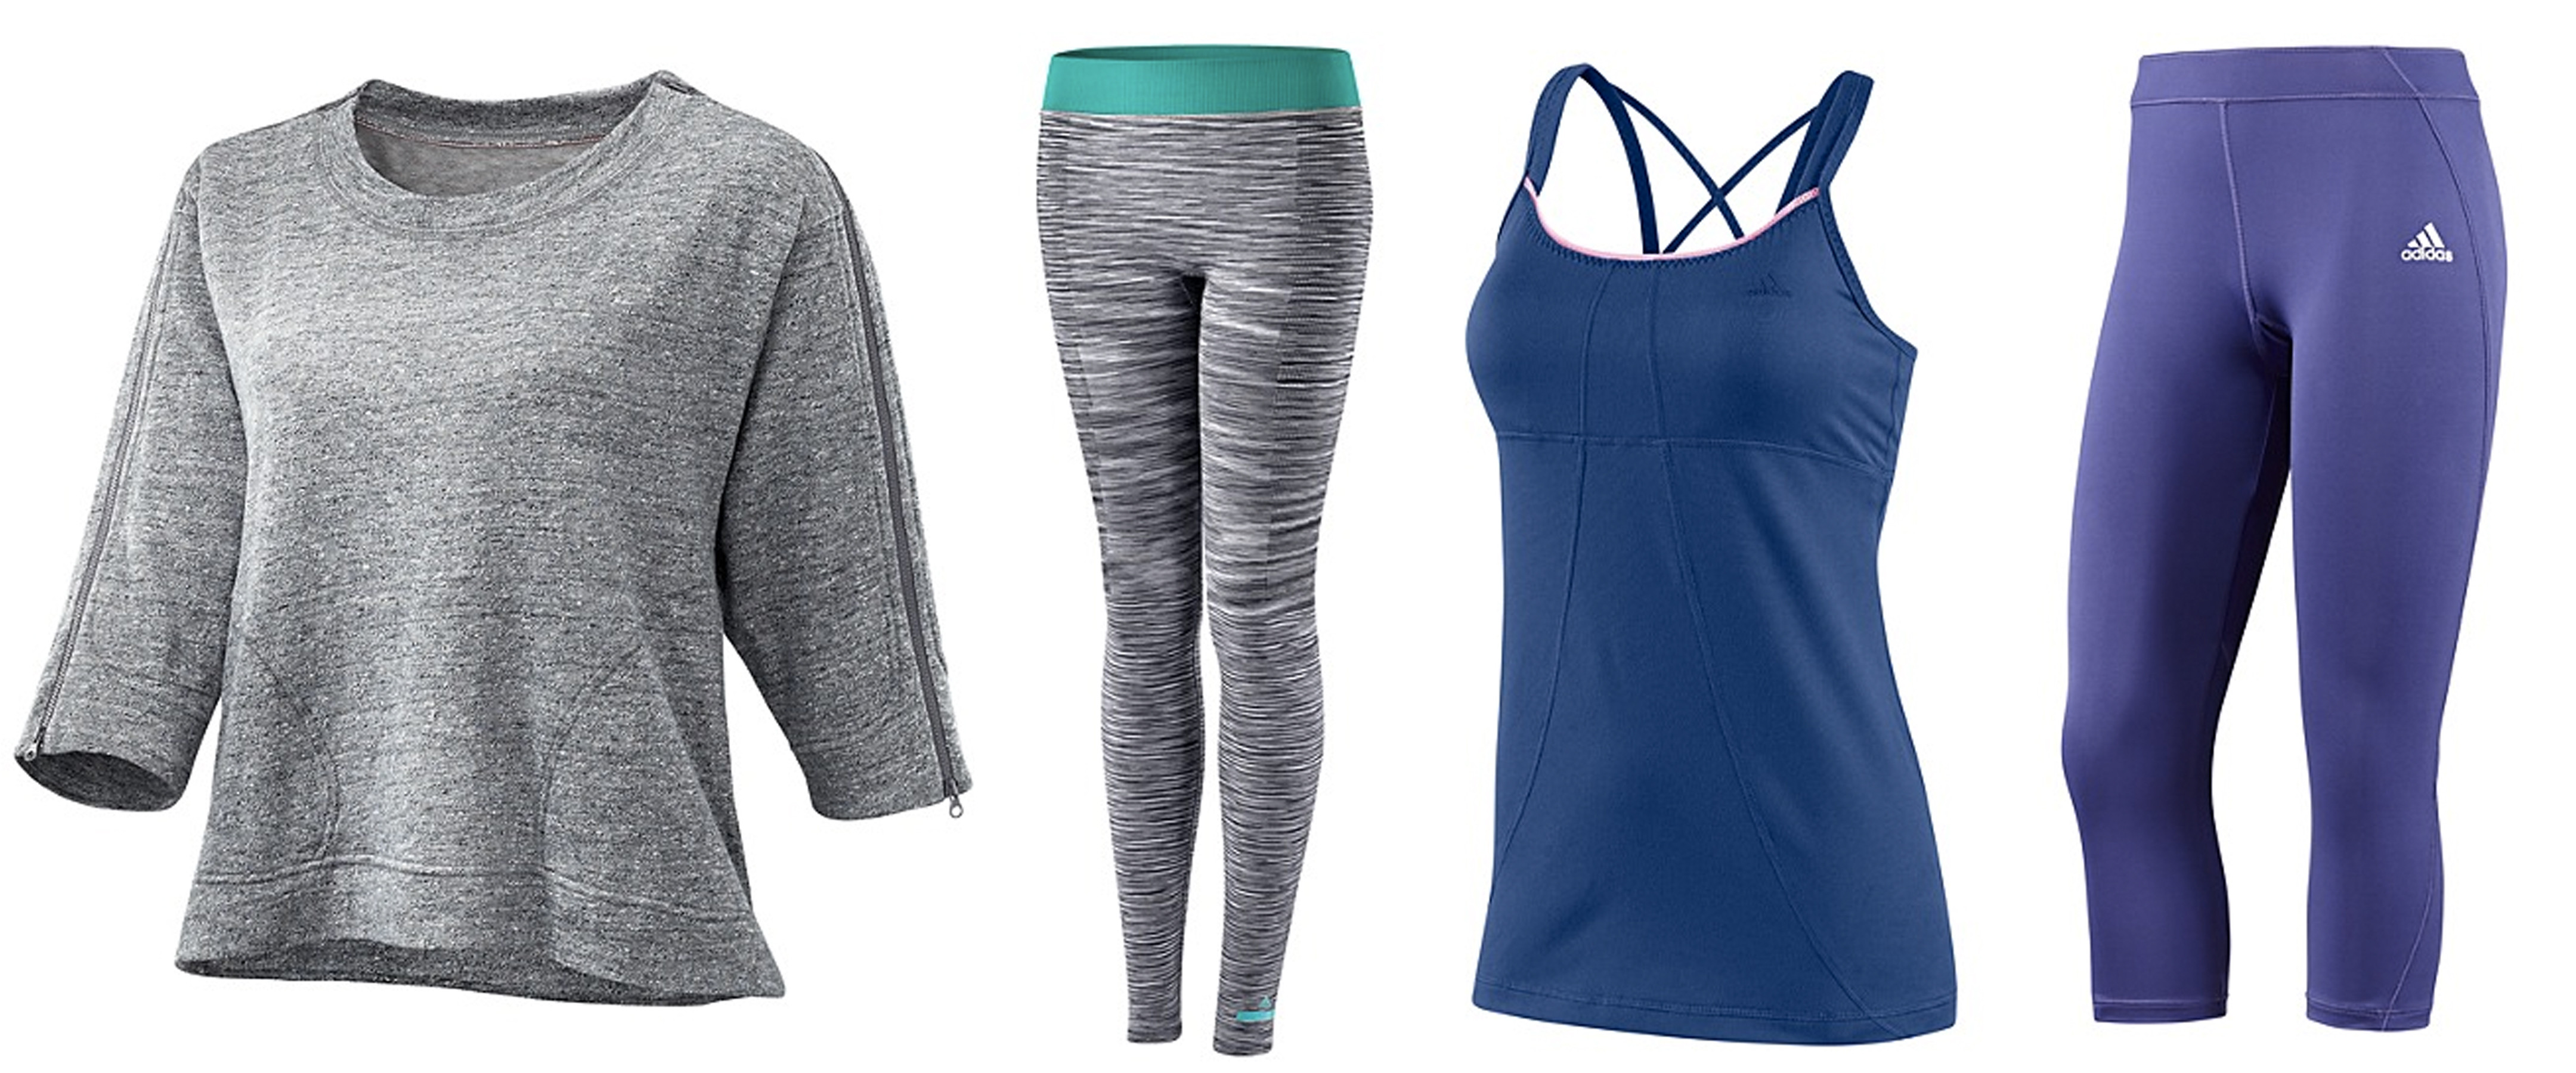 11 Places To Buy Yoga Gear That Aren't Lululemon | HuffPost